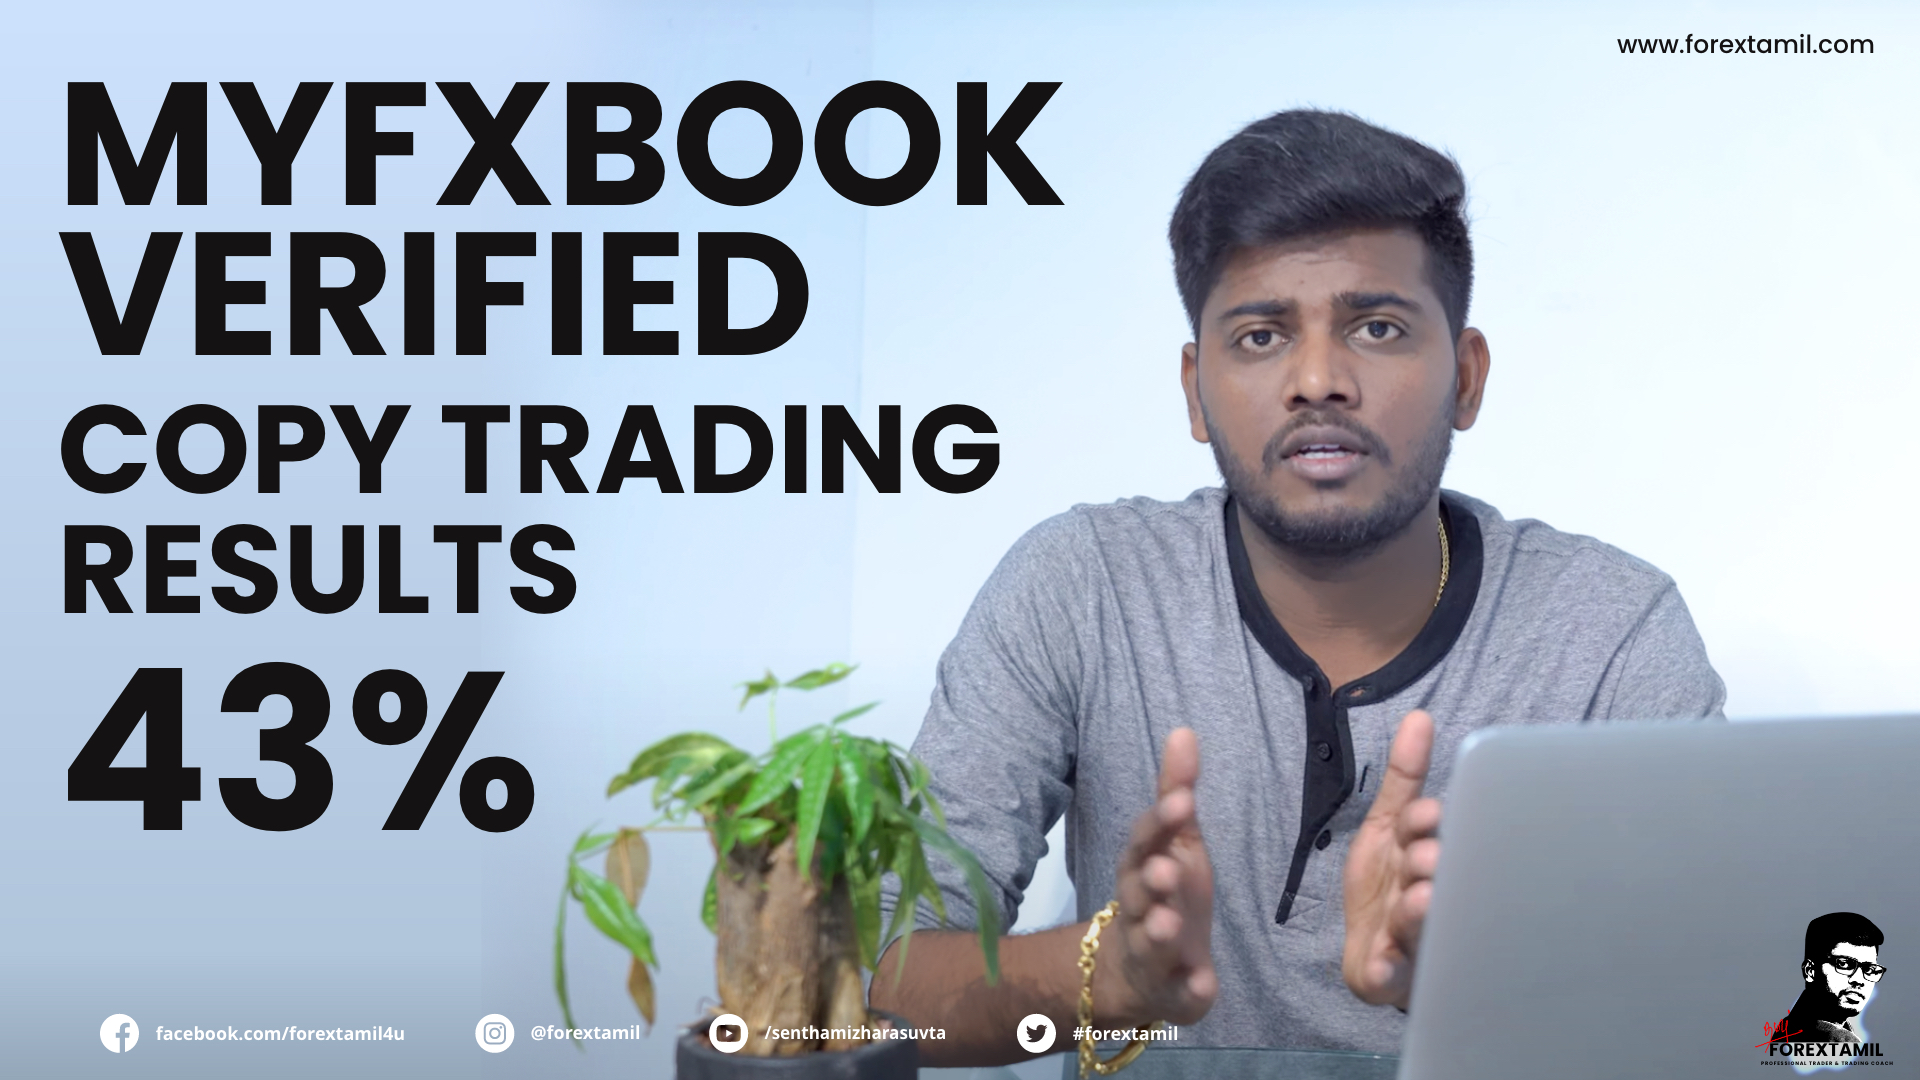 Myfxbook Verified Copy Trading Results 43% Watch how